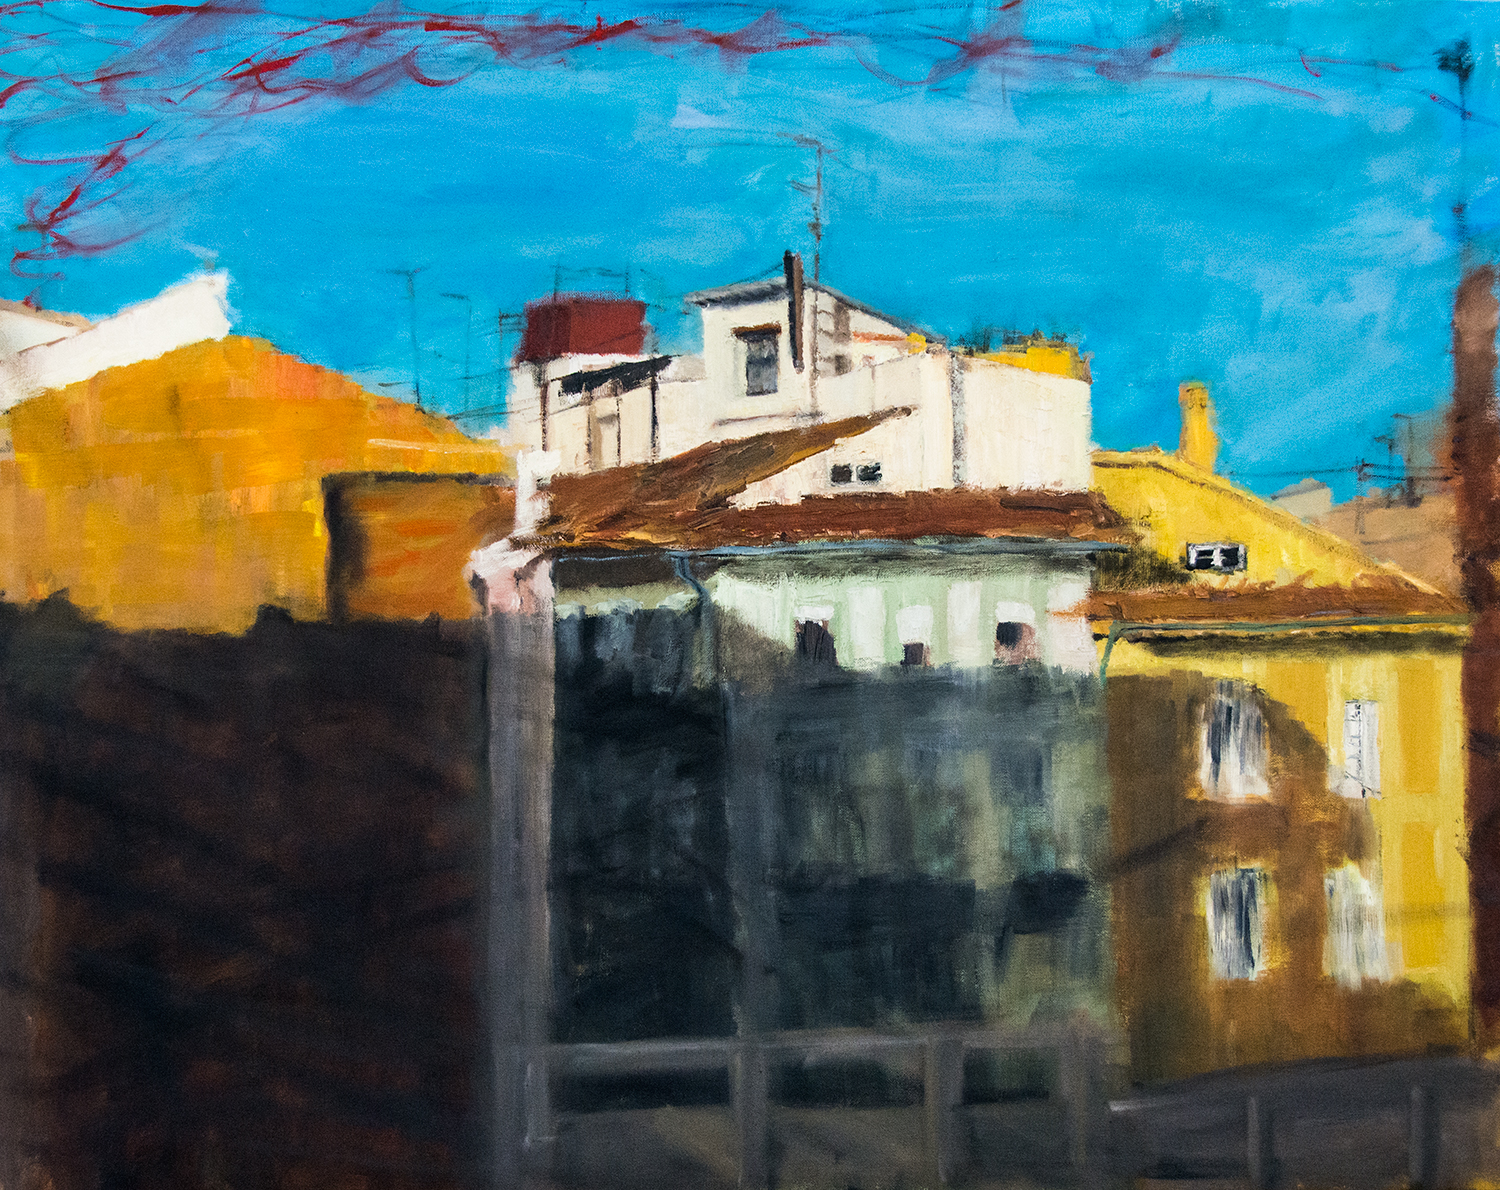 The Valencia series: The Old Town III, acrylic on canvas, 92x73cm